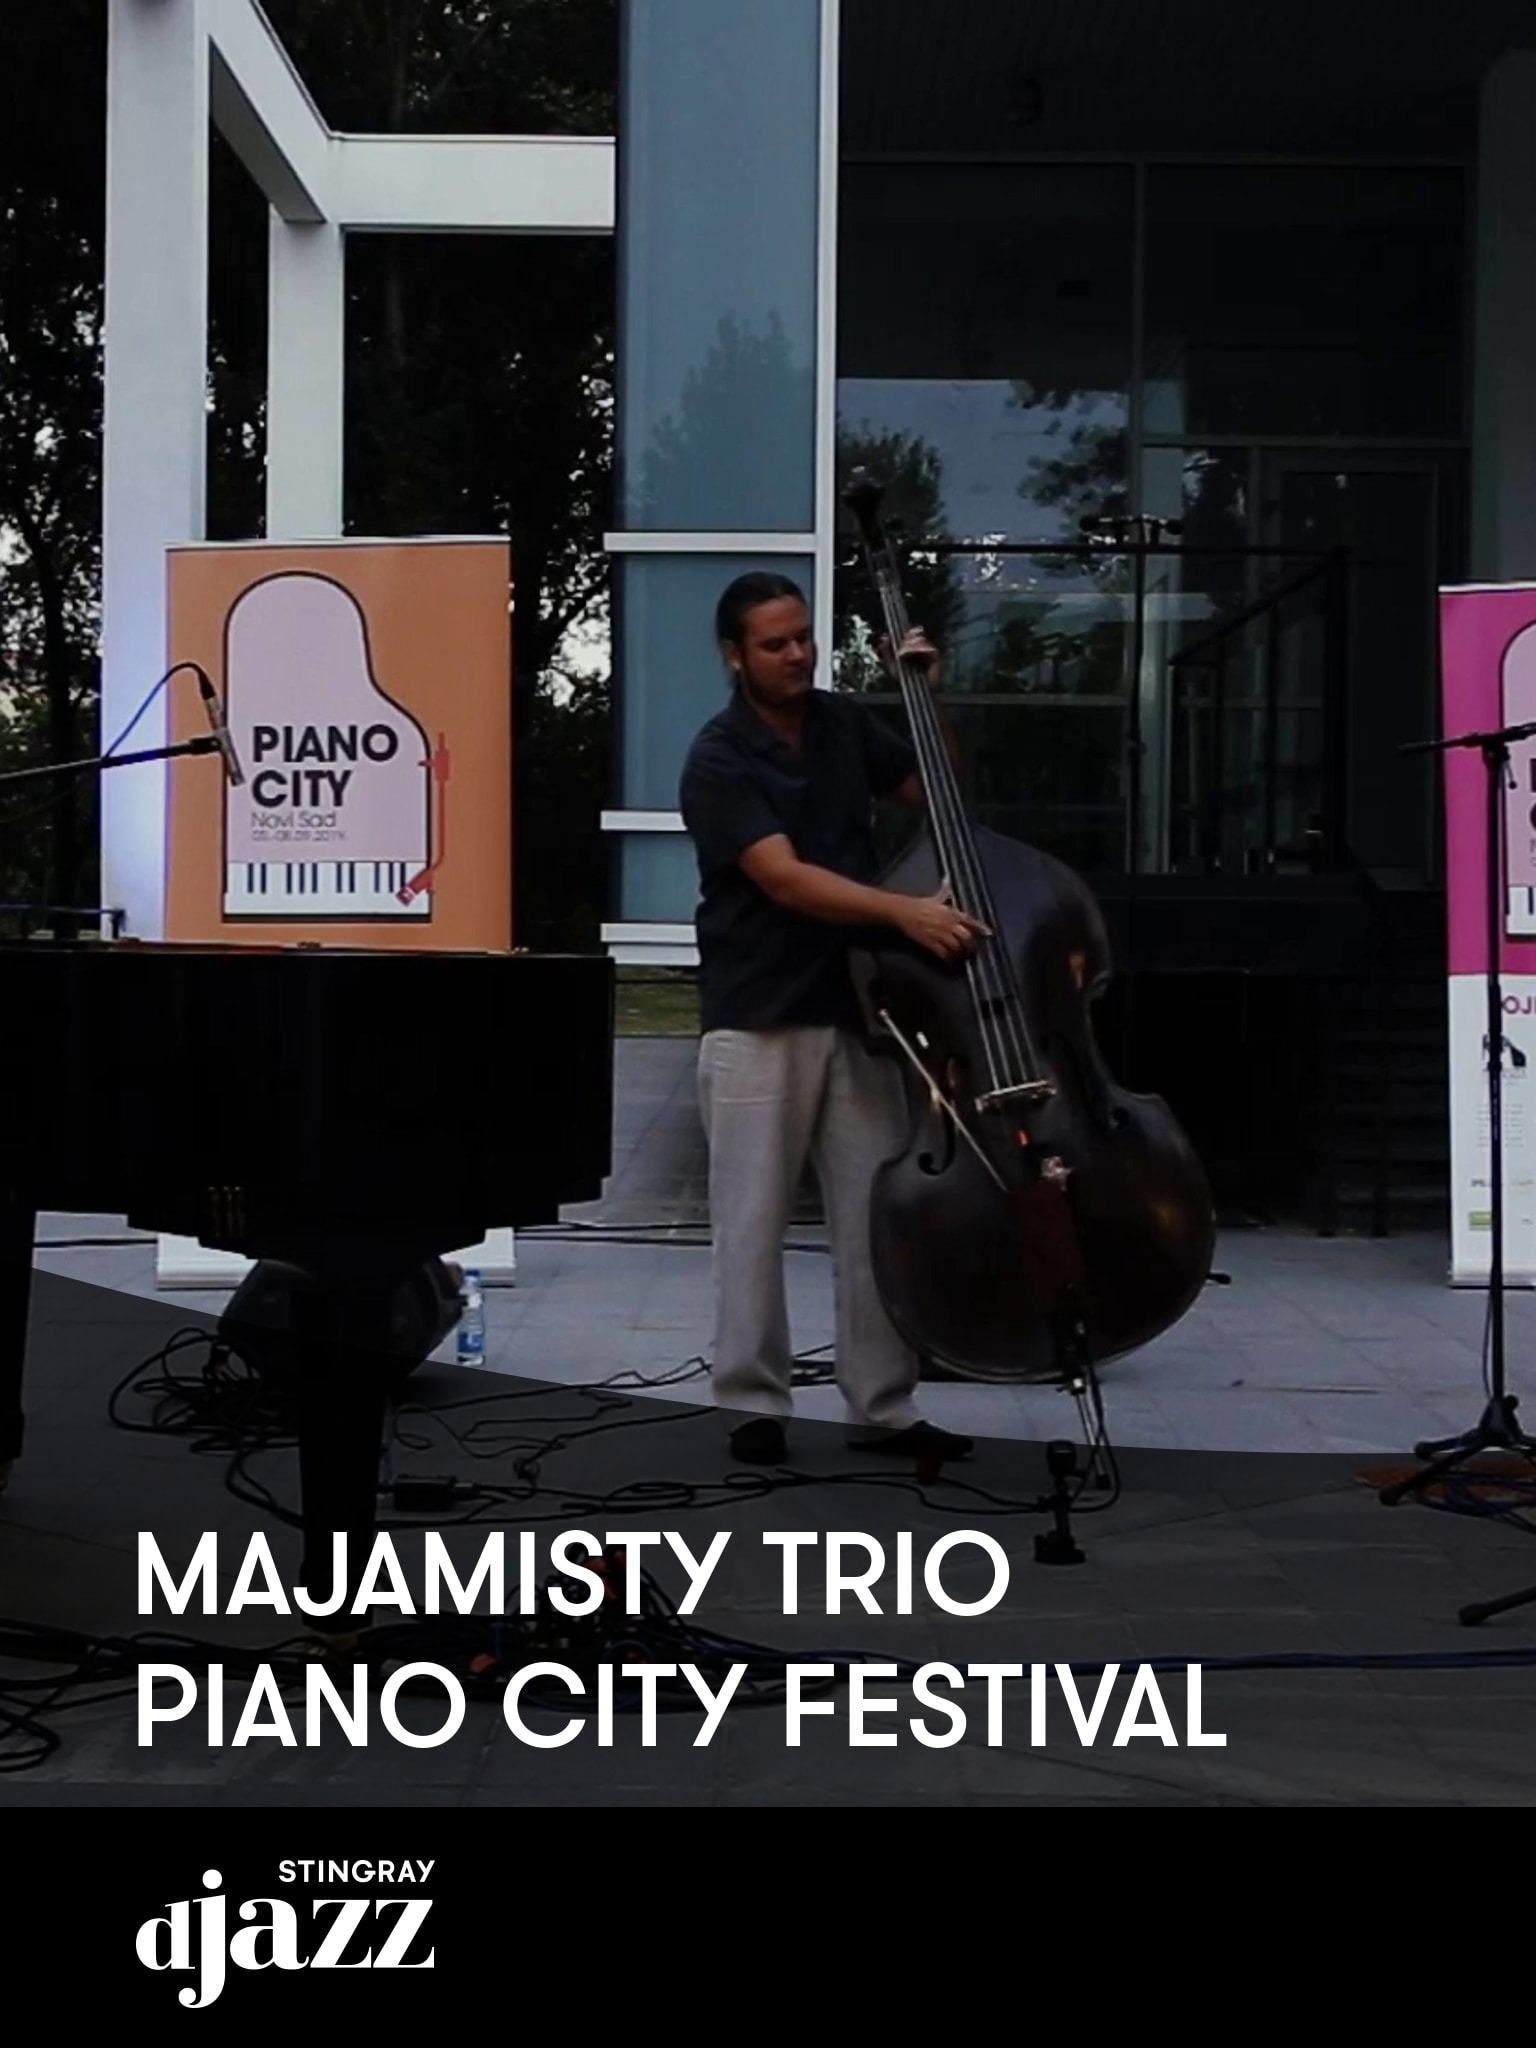 Majamisty TriO - Piano City Festival